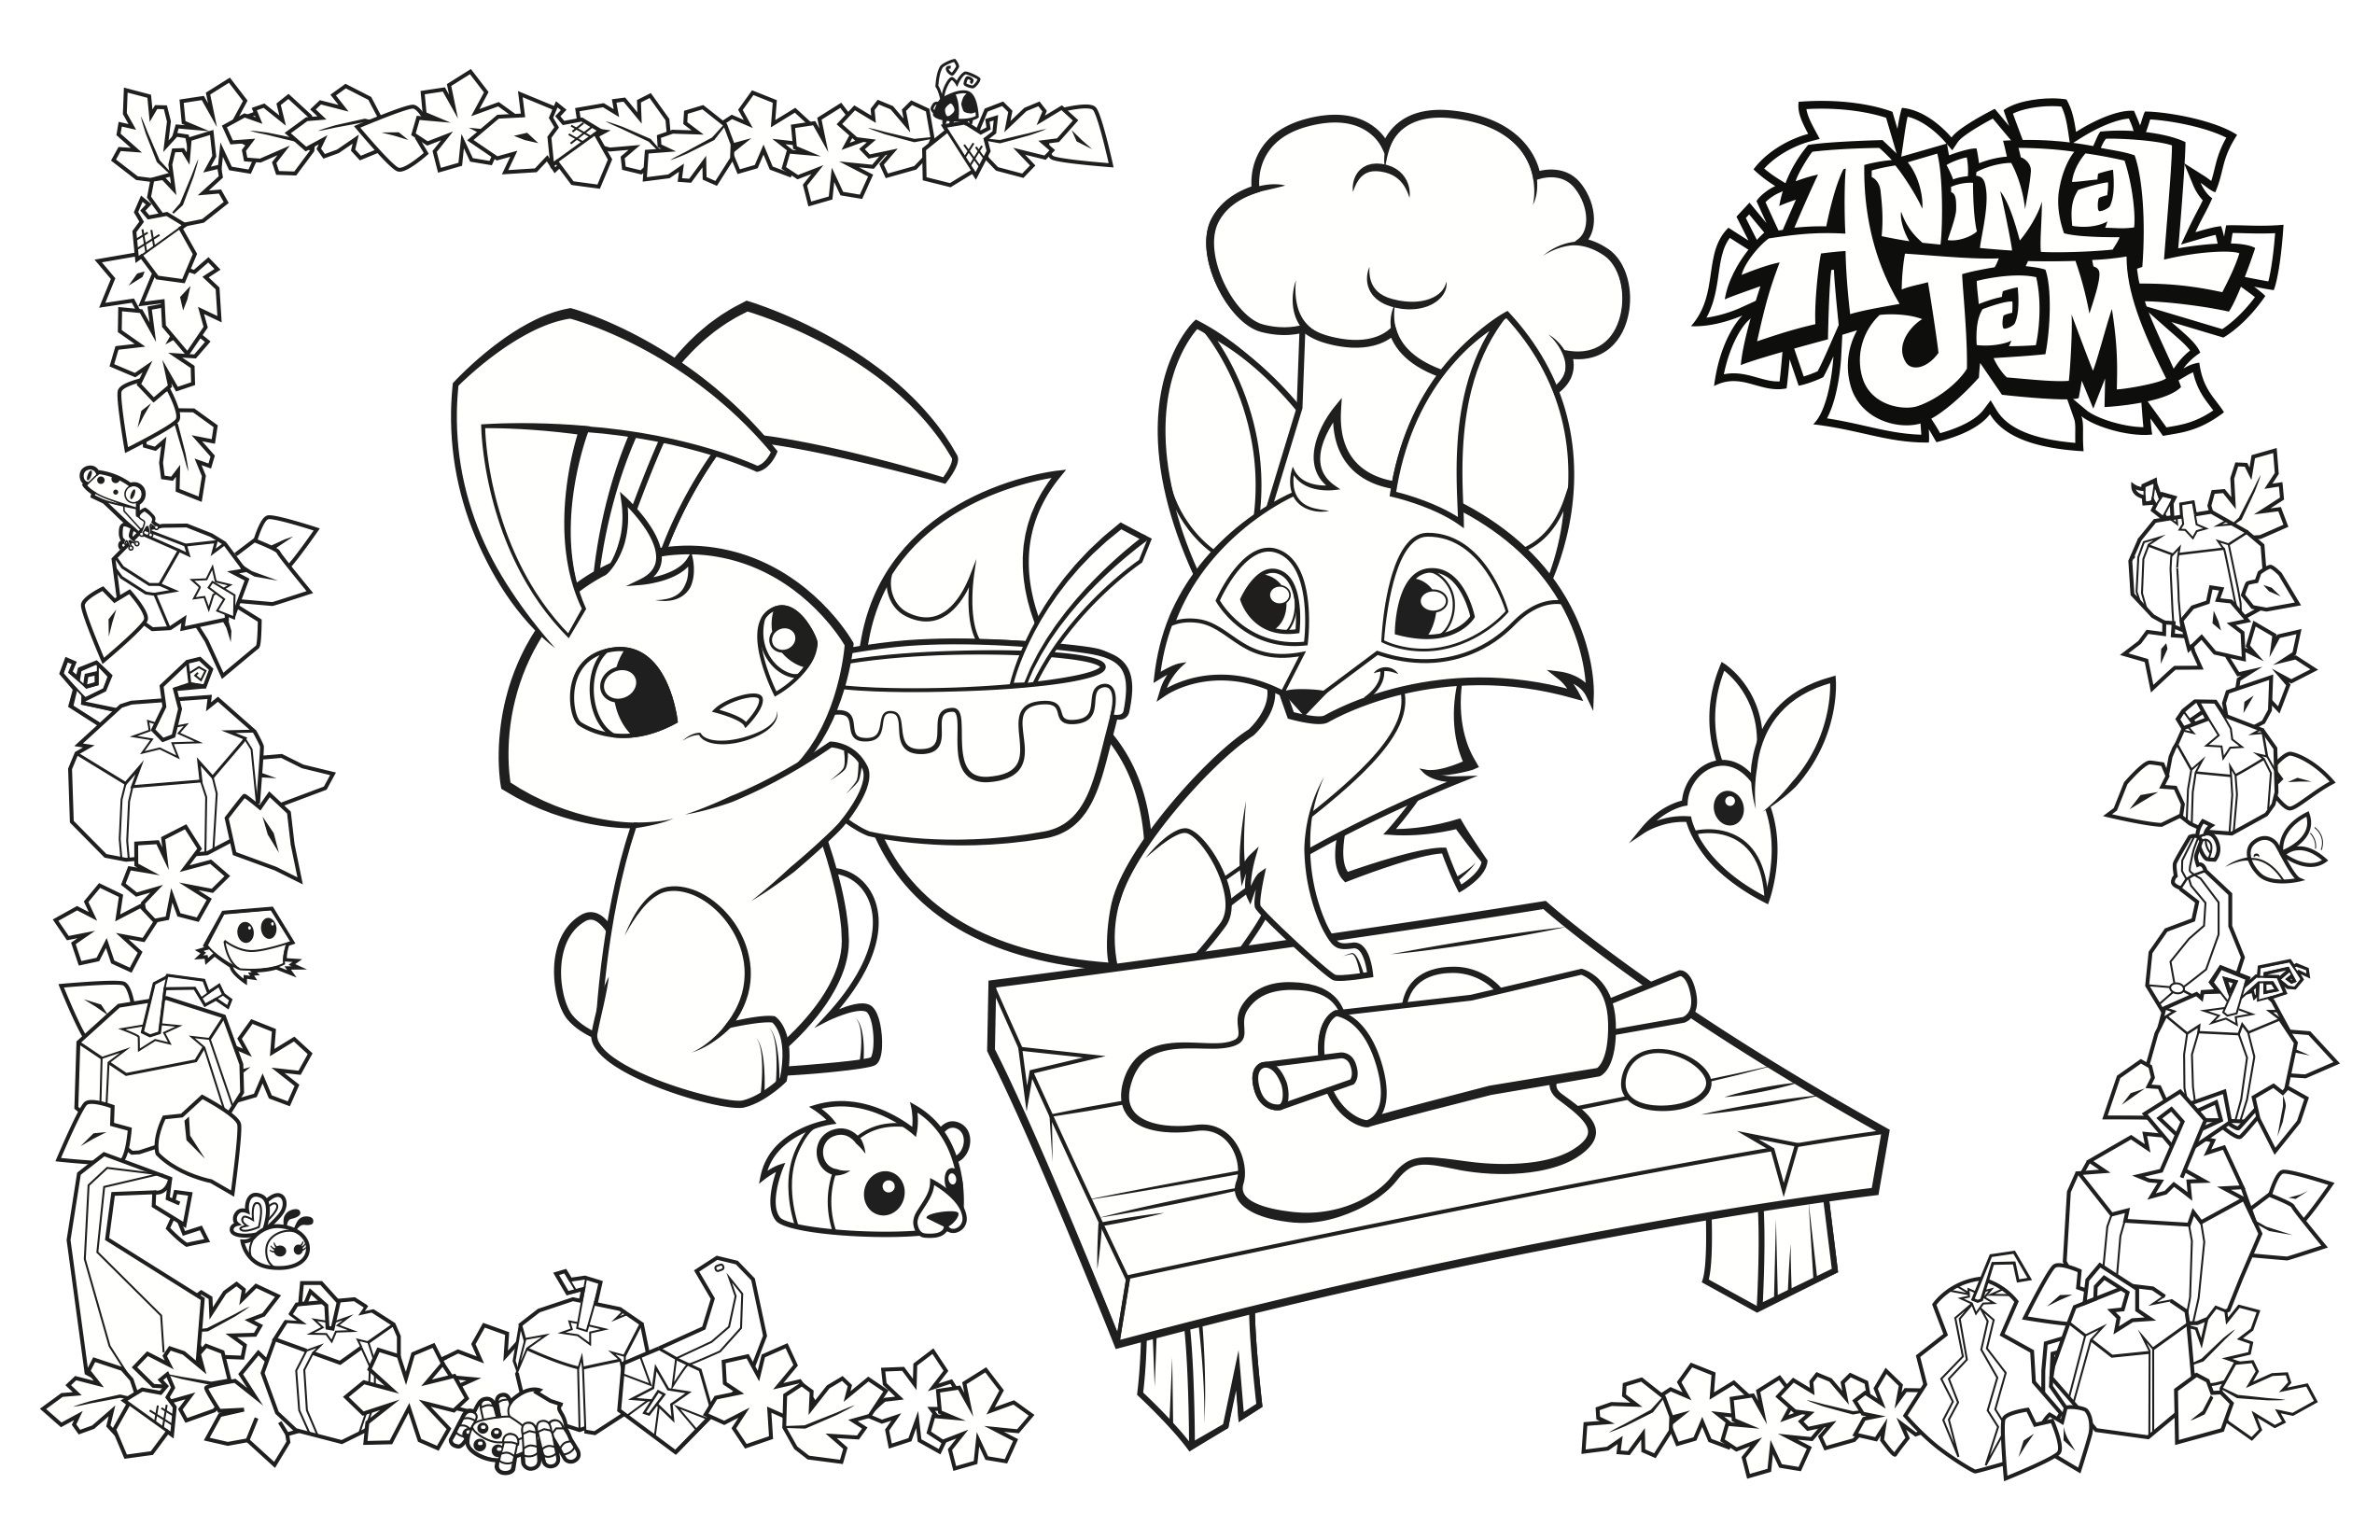 Hey Jammers Download These Amazing Feast Of Thanks Coloring Pages And Placemats Have Fun And Playwil Animal Jam Animal Coloring Pages Cartoon Coloring Pages